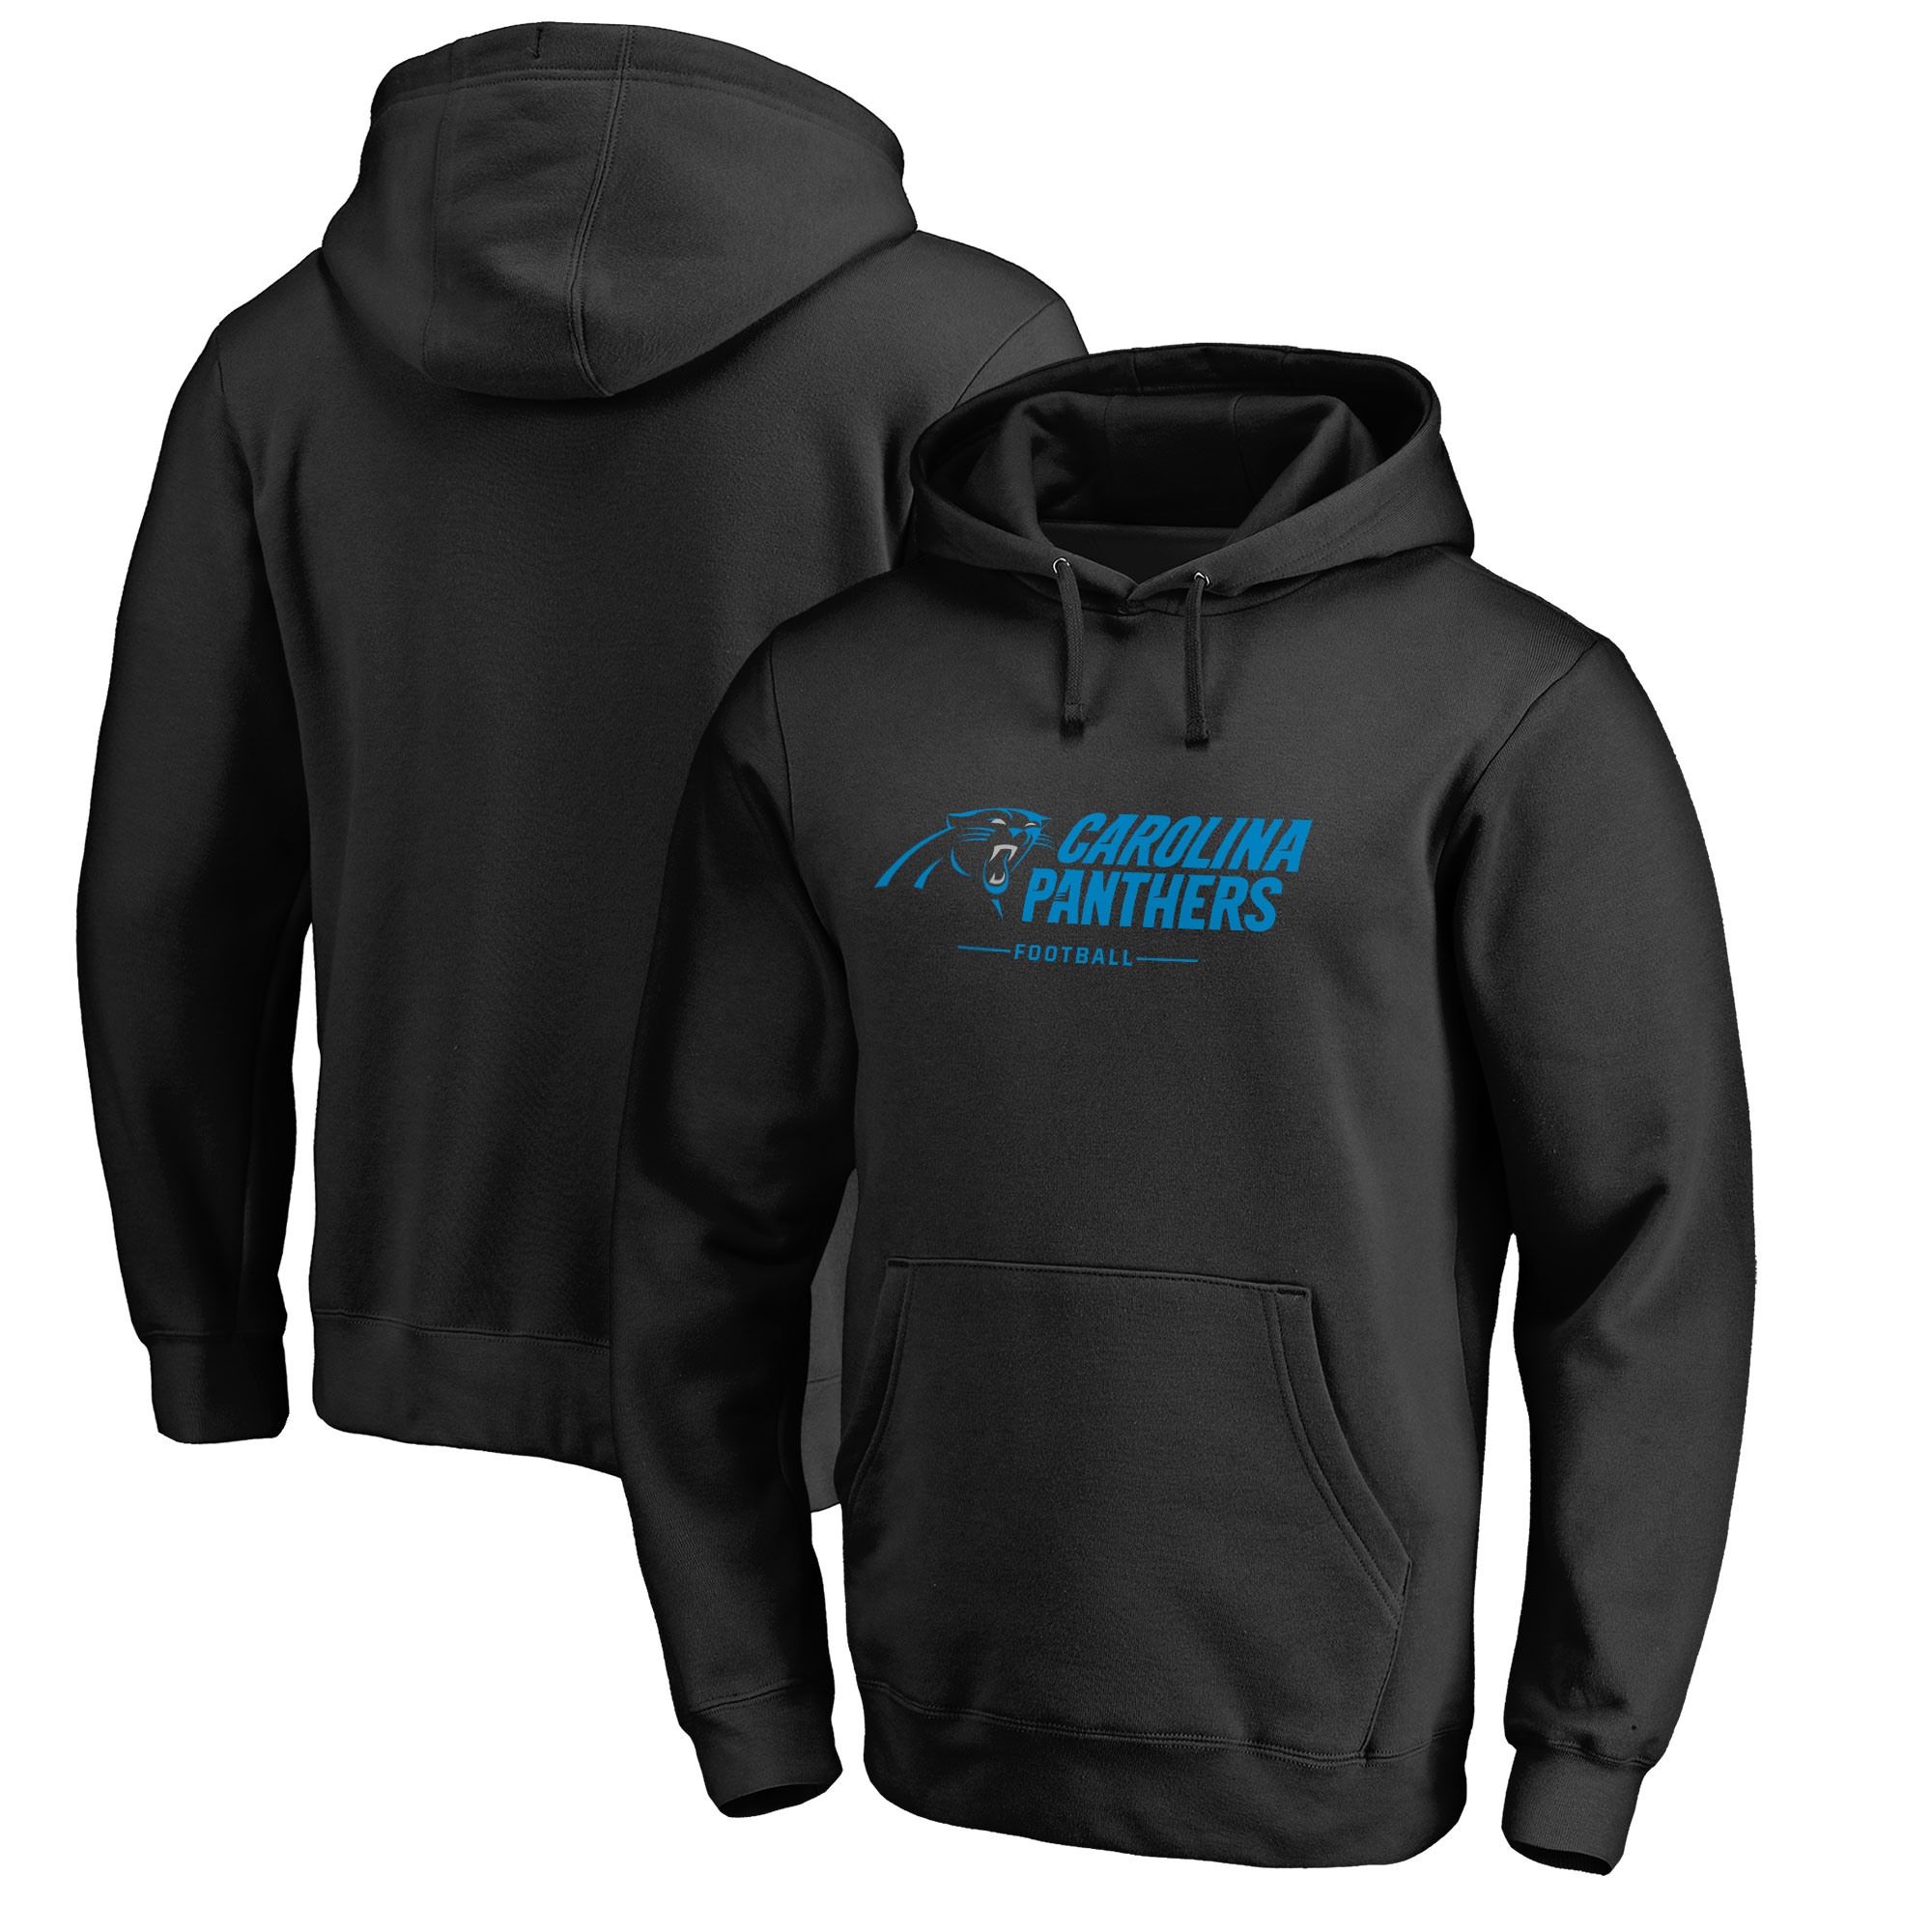 Carolina Panthers NFL Pro Line by Fanatics Branded Team Lockup Pullover Hoodie - Black